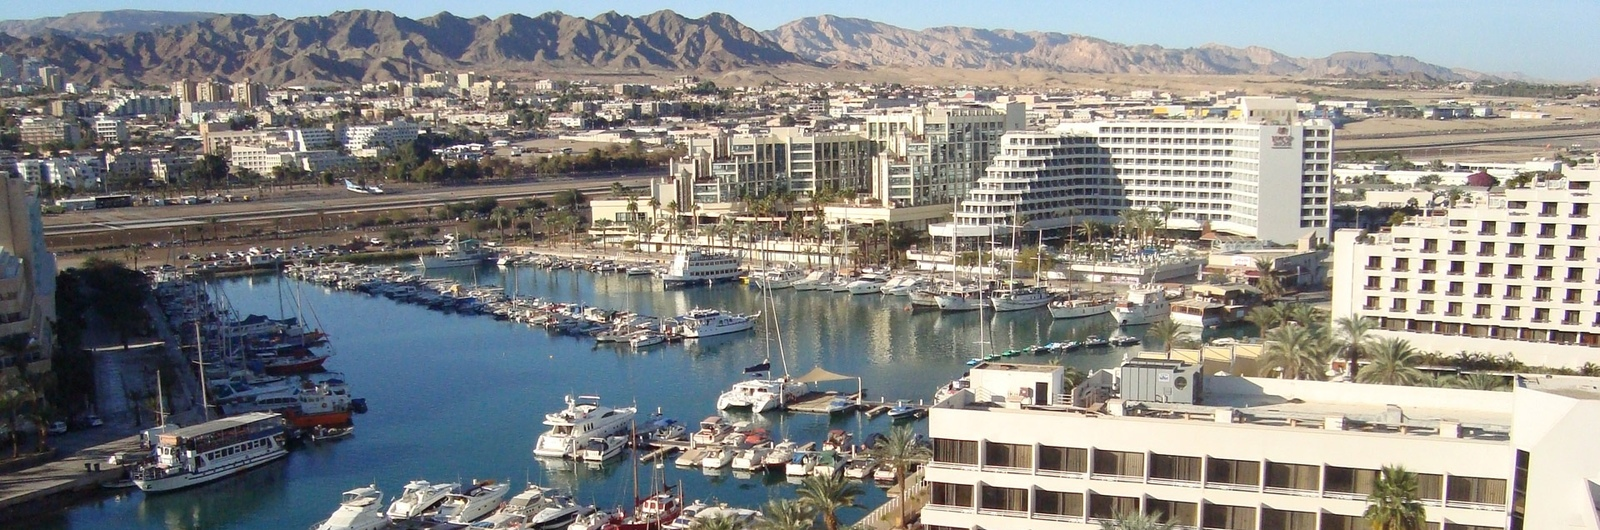 eilat city header